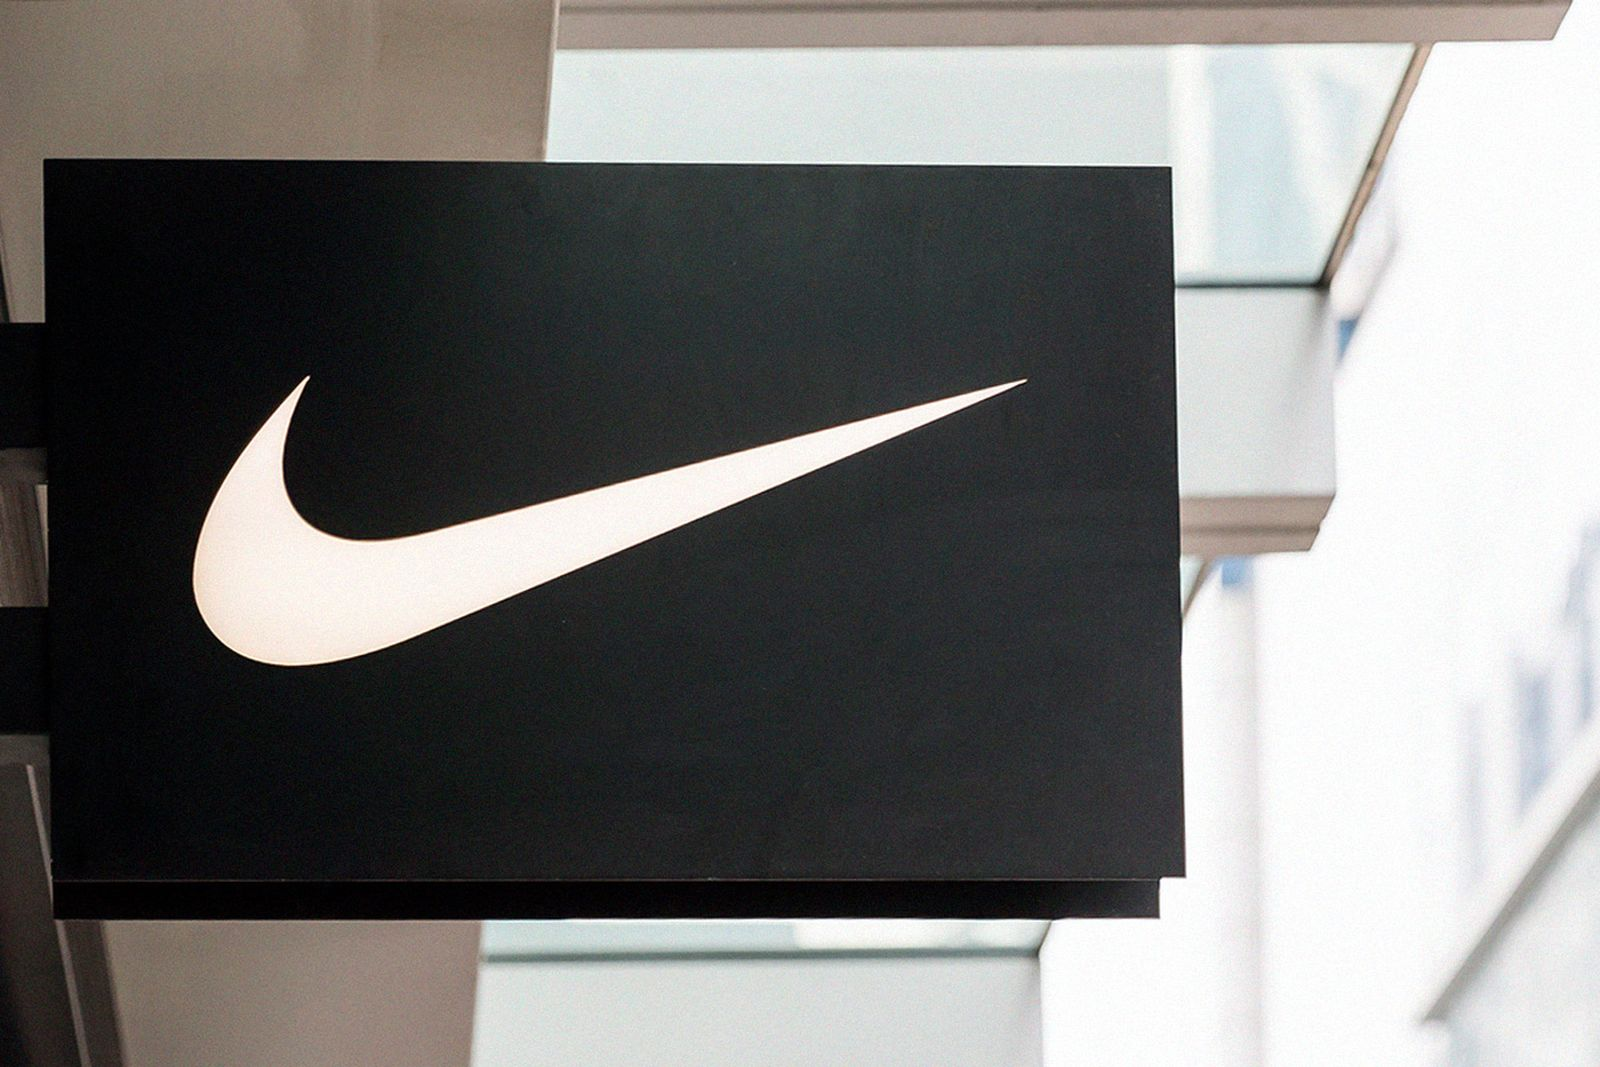 nike-counterfeit-sneakers-lawsuits-01